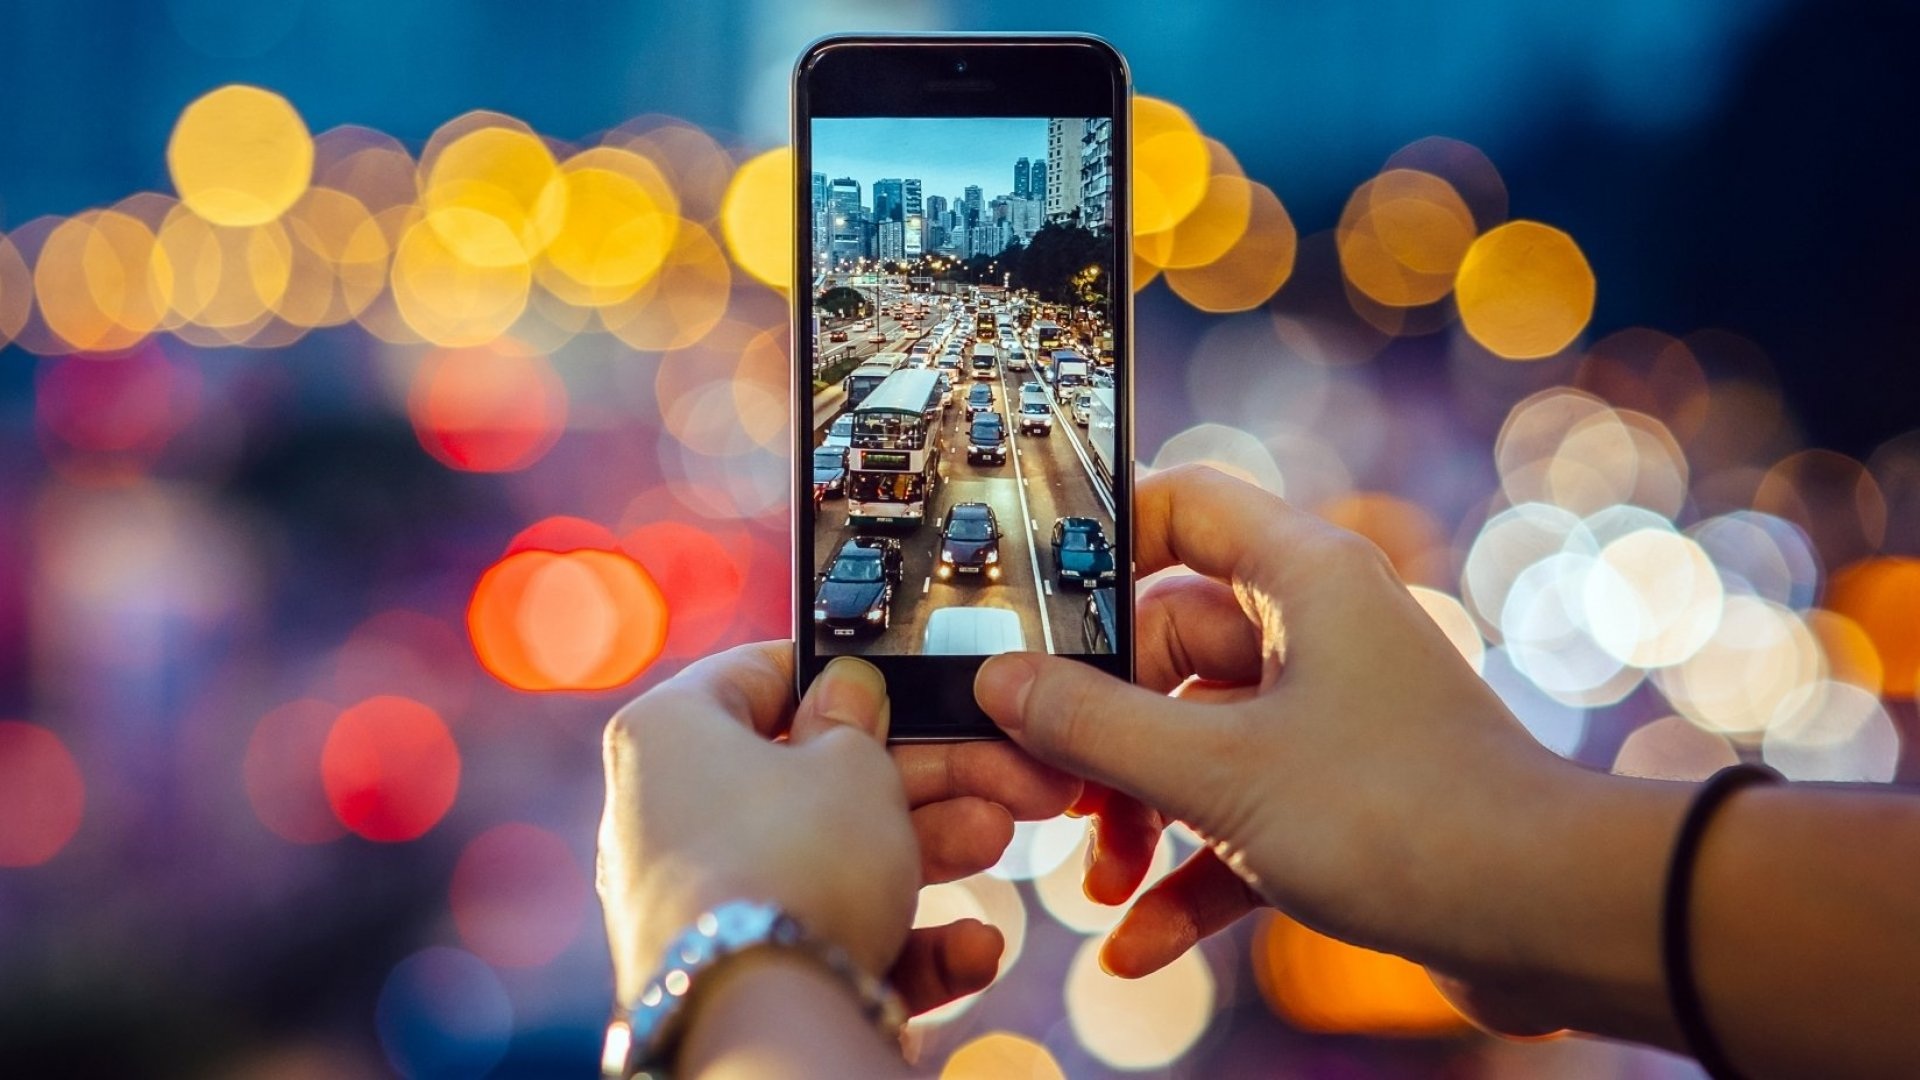 How to Increase Sales and Make Money With Instagram